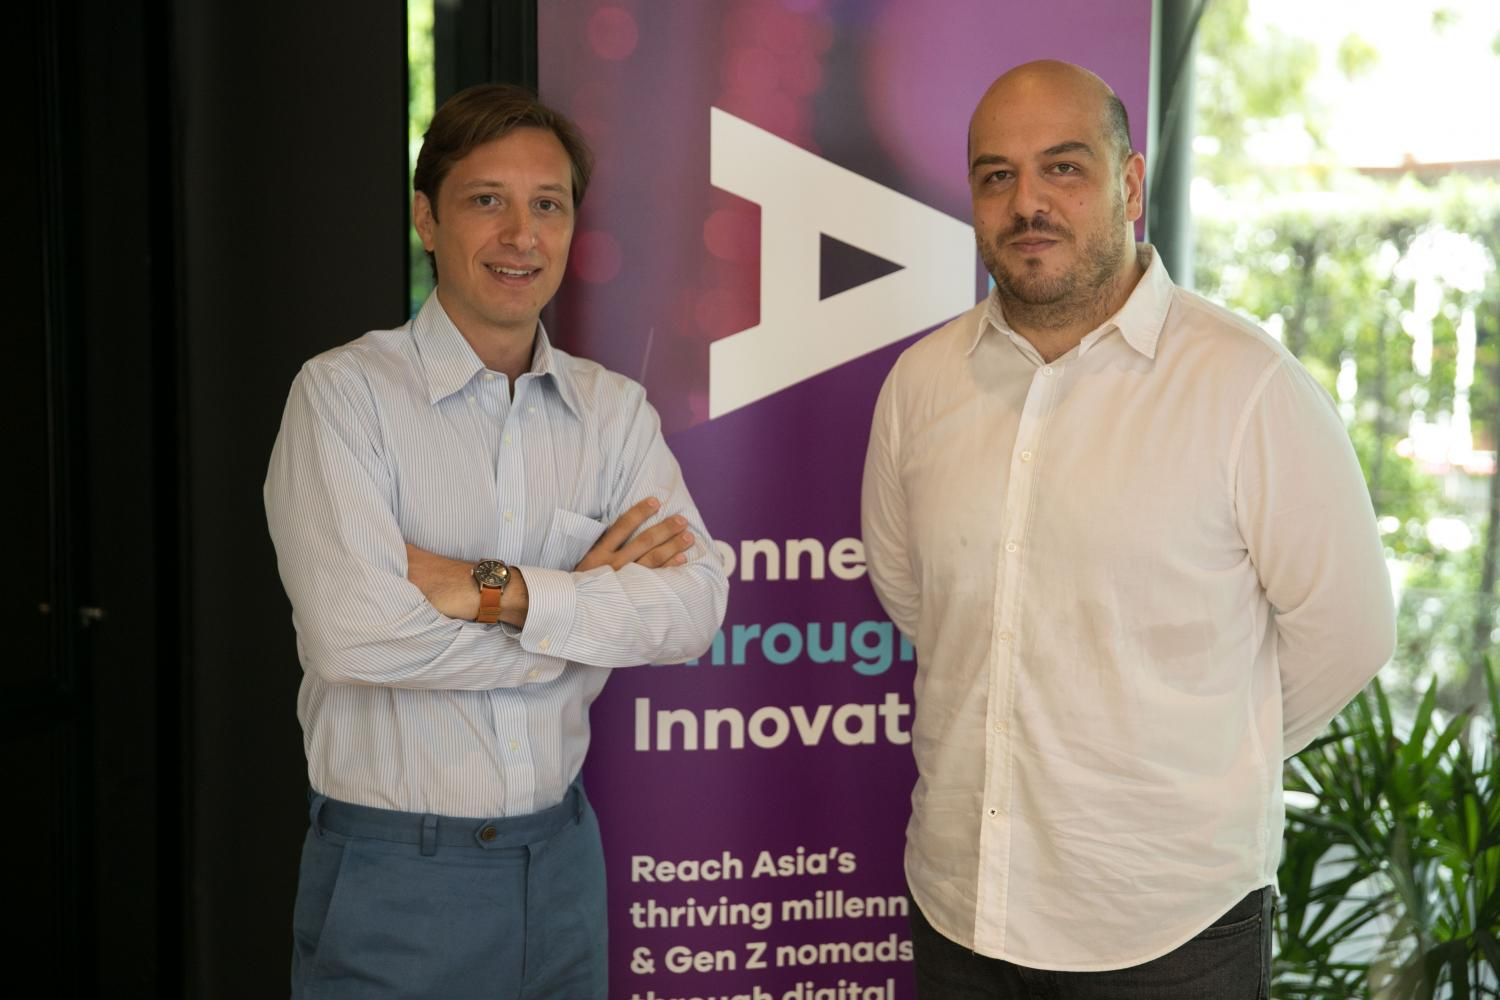 Mr Meana (left) and Mr Piscini believe Crea can help brands market to youth online.